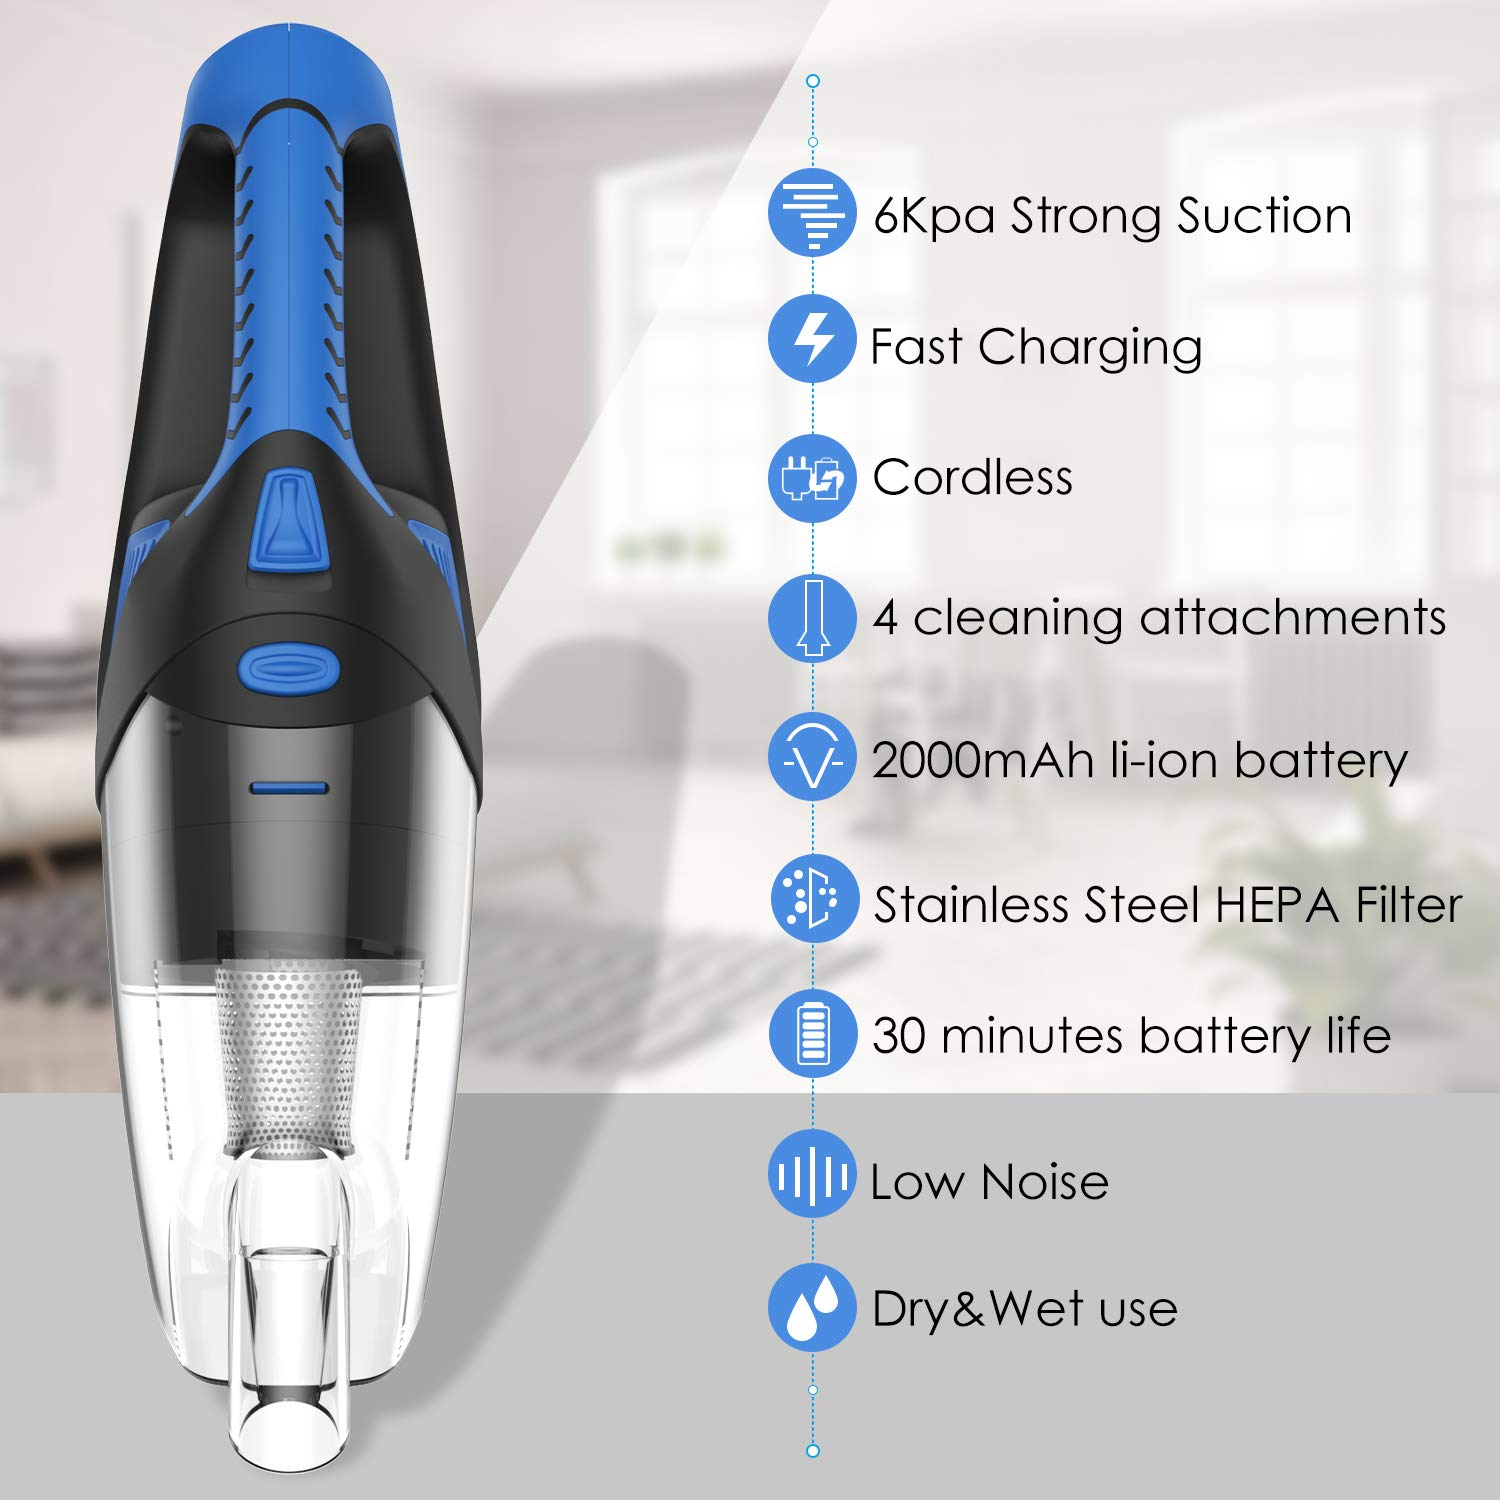 Handheld Vacuum Cordless Dust Buster Portable Wet Dry Pet Hair Rechargeable Hand Vacuum for Home/Car Cleaning, 120W Motor w/ 6kPa Cyclone Suction by Newinner (Image #7)